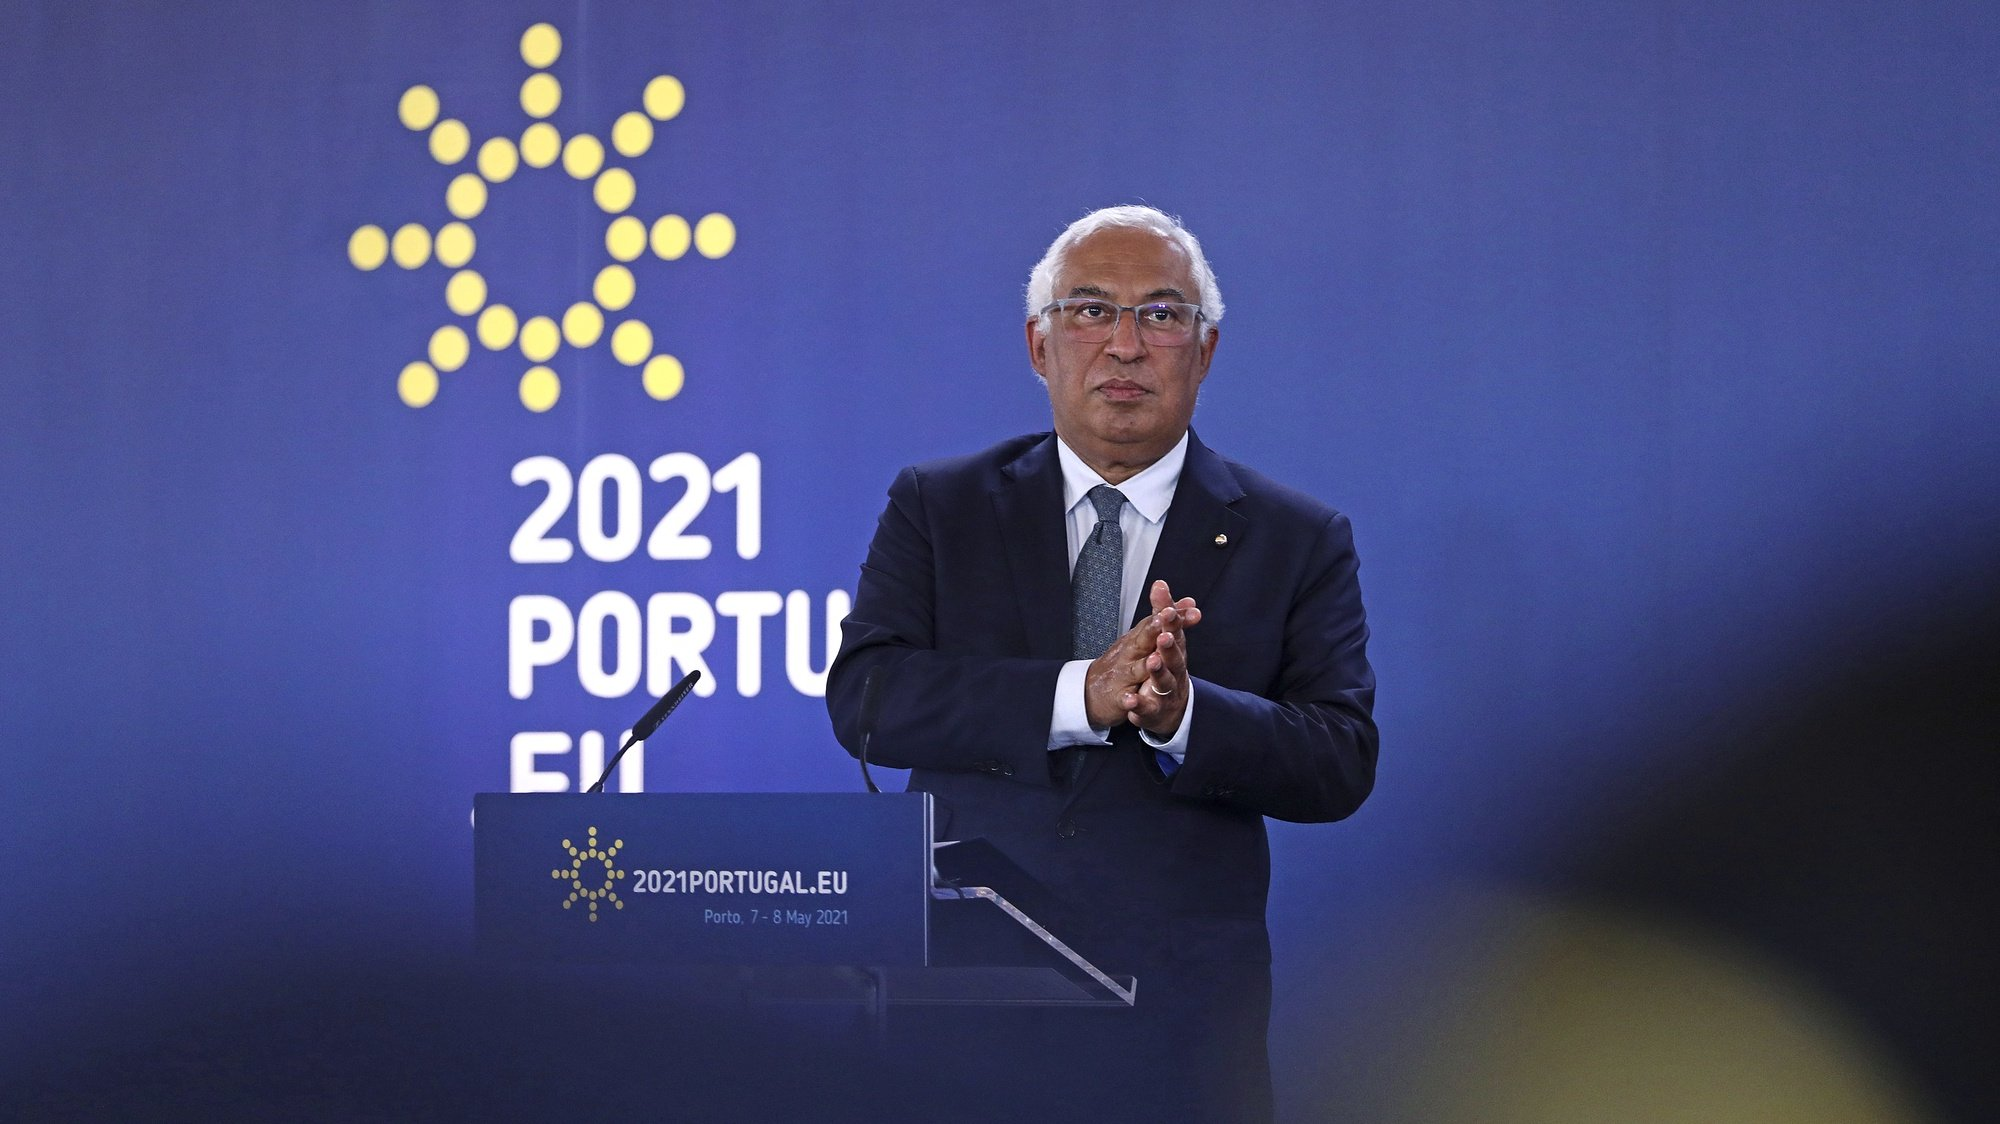 epa09185632 Portuguese Prime Minister Antonio Costa attends the final press conference at the end of the informal meeting during the 2nd day of the EU Social Summit at the Palacio de Cristal in Porto, Portugal, 08 May 2021. The European Union leaders met for a summit in Portugal, sending a signal they see the threat from COVID-19 on their continent as waning amid a quickening vaccine rollout. Their talks hope to repair some of the damage the coronavirus has caused in the bloc, in such areas as welfare and employment.  EPA/ANTONIO PEDRO SANTOS/POOL